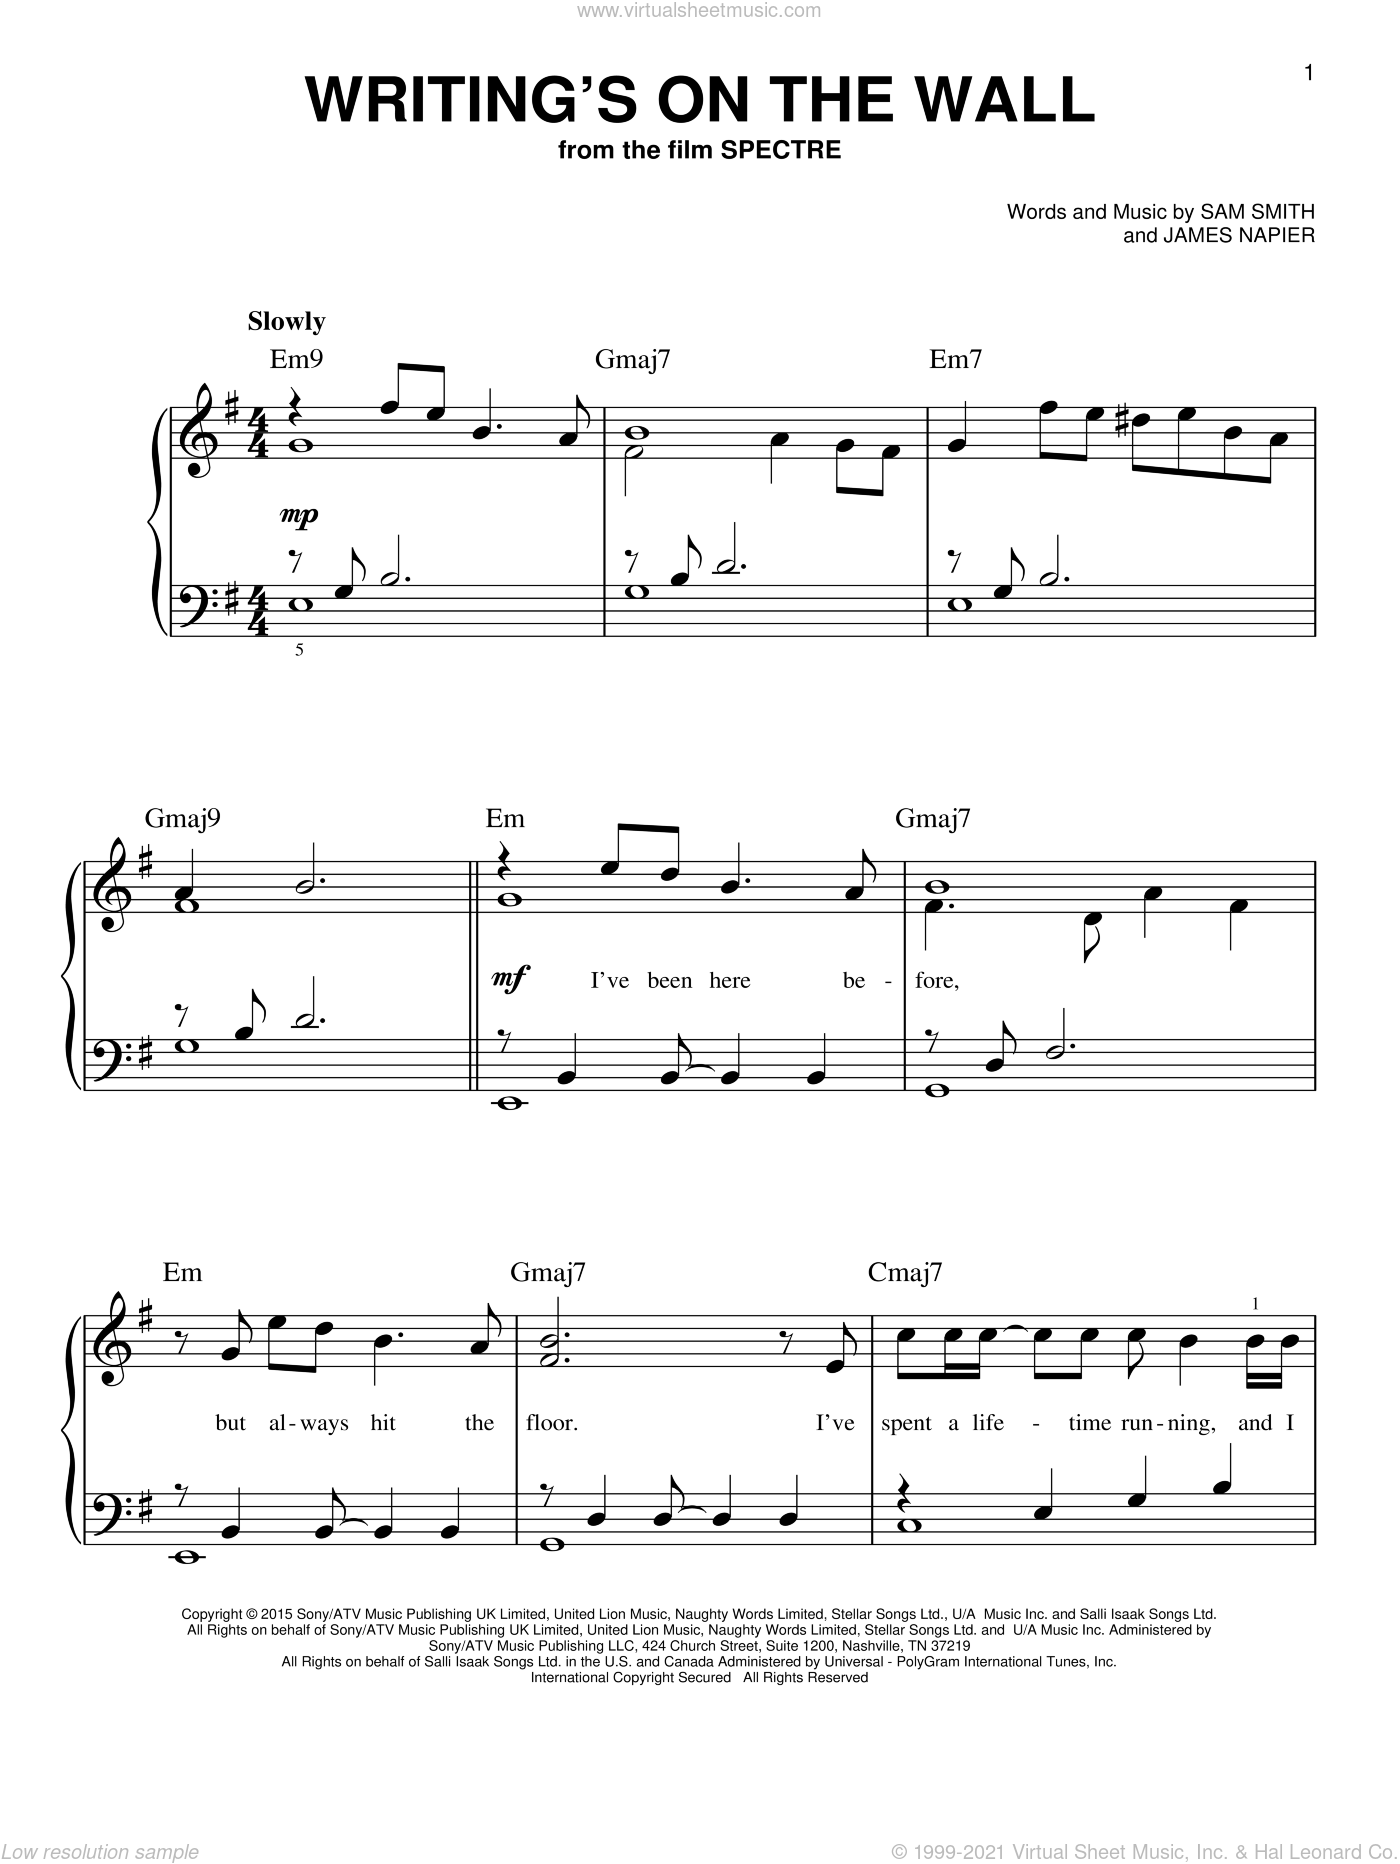 Writing's On The Wall sheet music for piano solo by Sam Smith, easy. Score Image Preview.